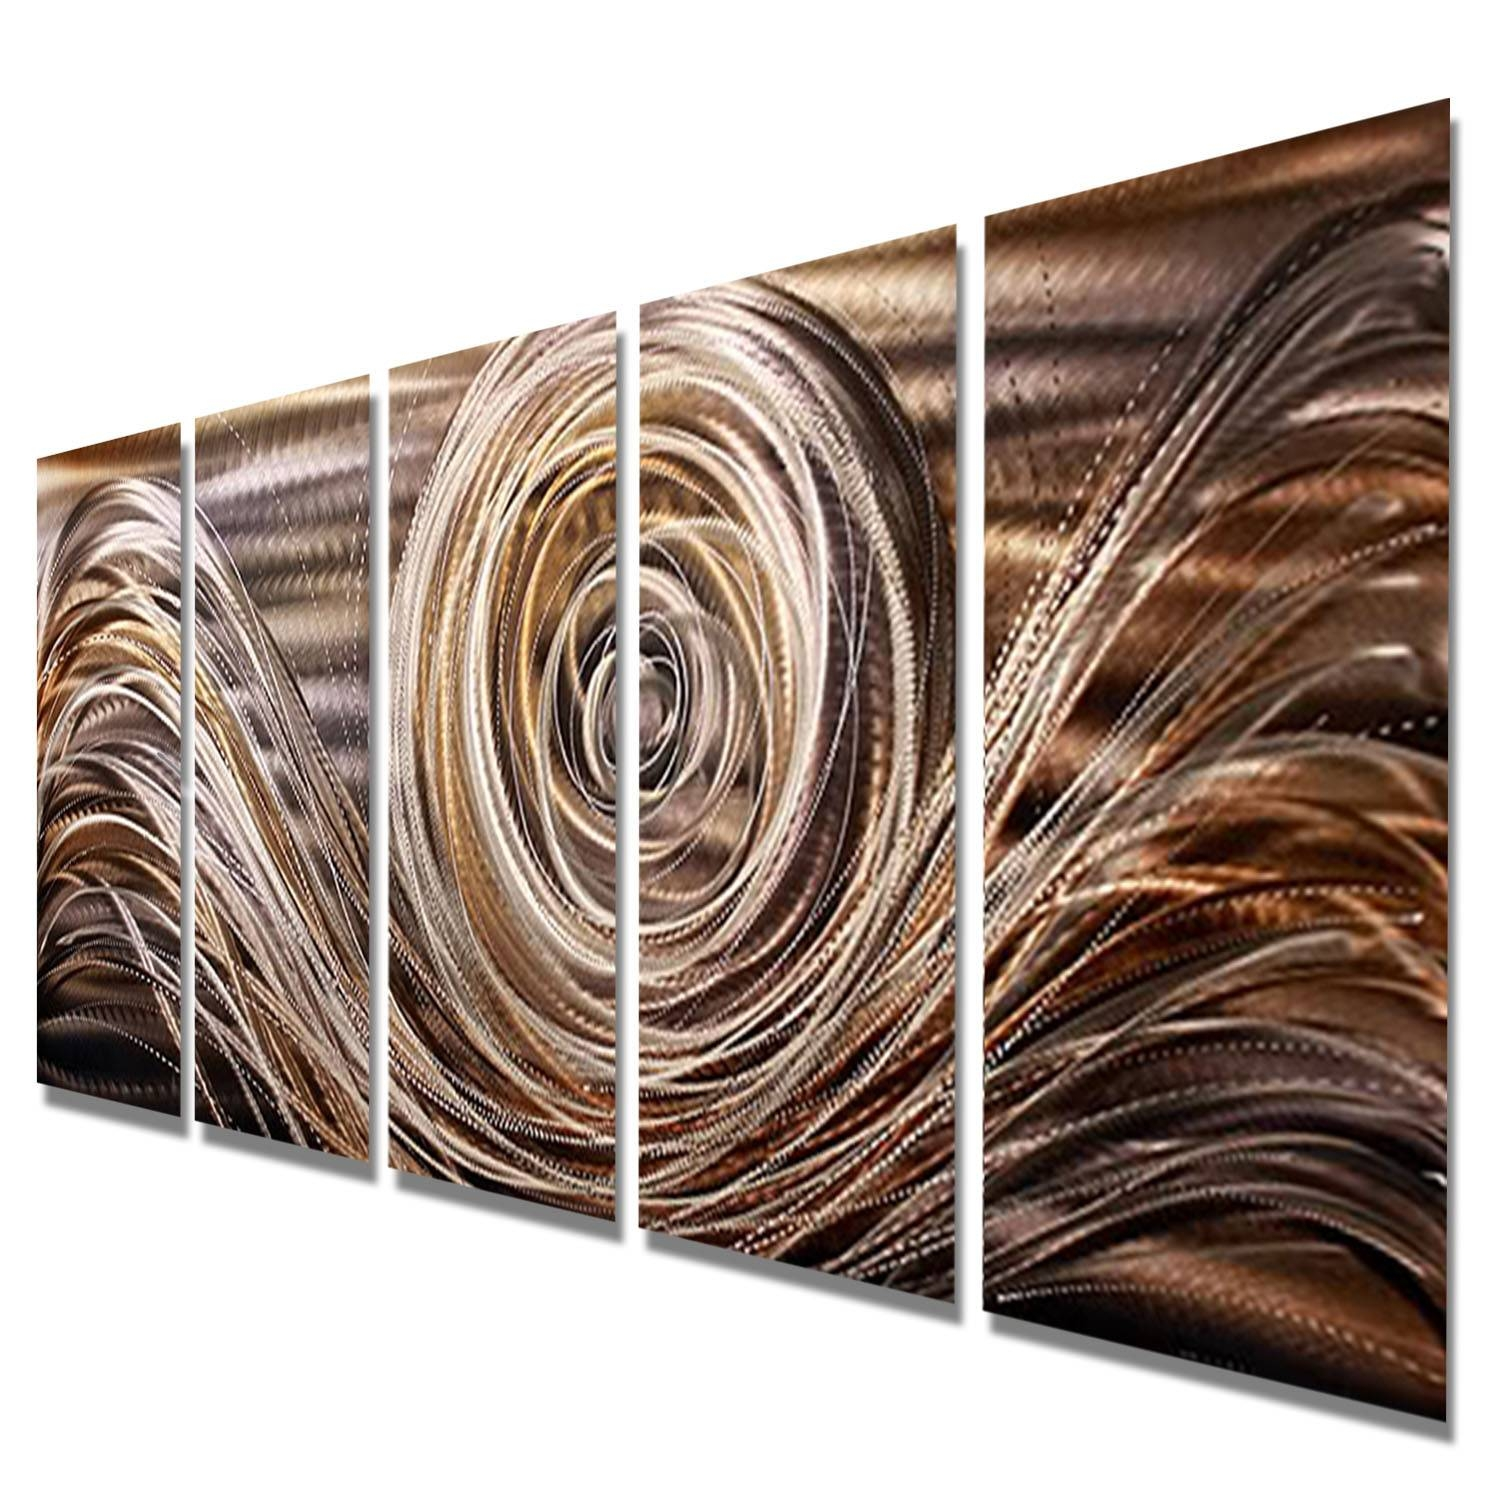 Mocha Swirl – Charcoal, Brown, Gold, And Silver Metal Wall Art – 5 Inside Most Recent Swirl Metal Wall Art (View 4 of 20)